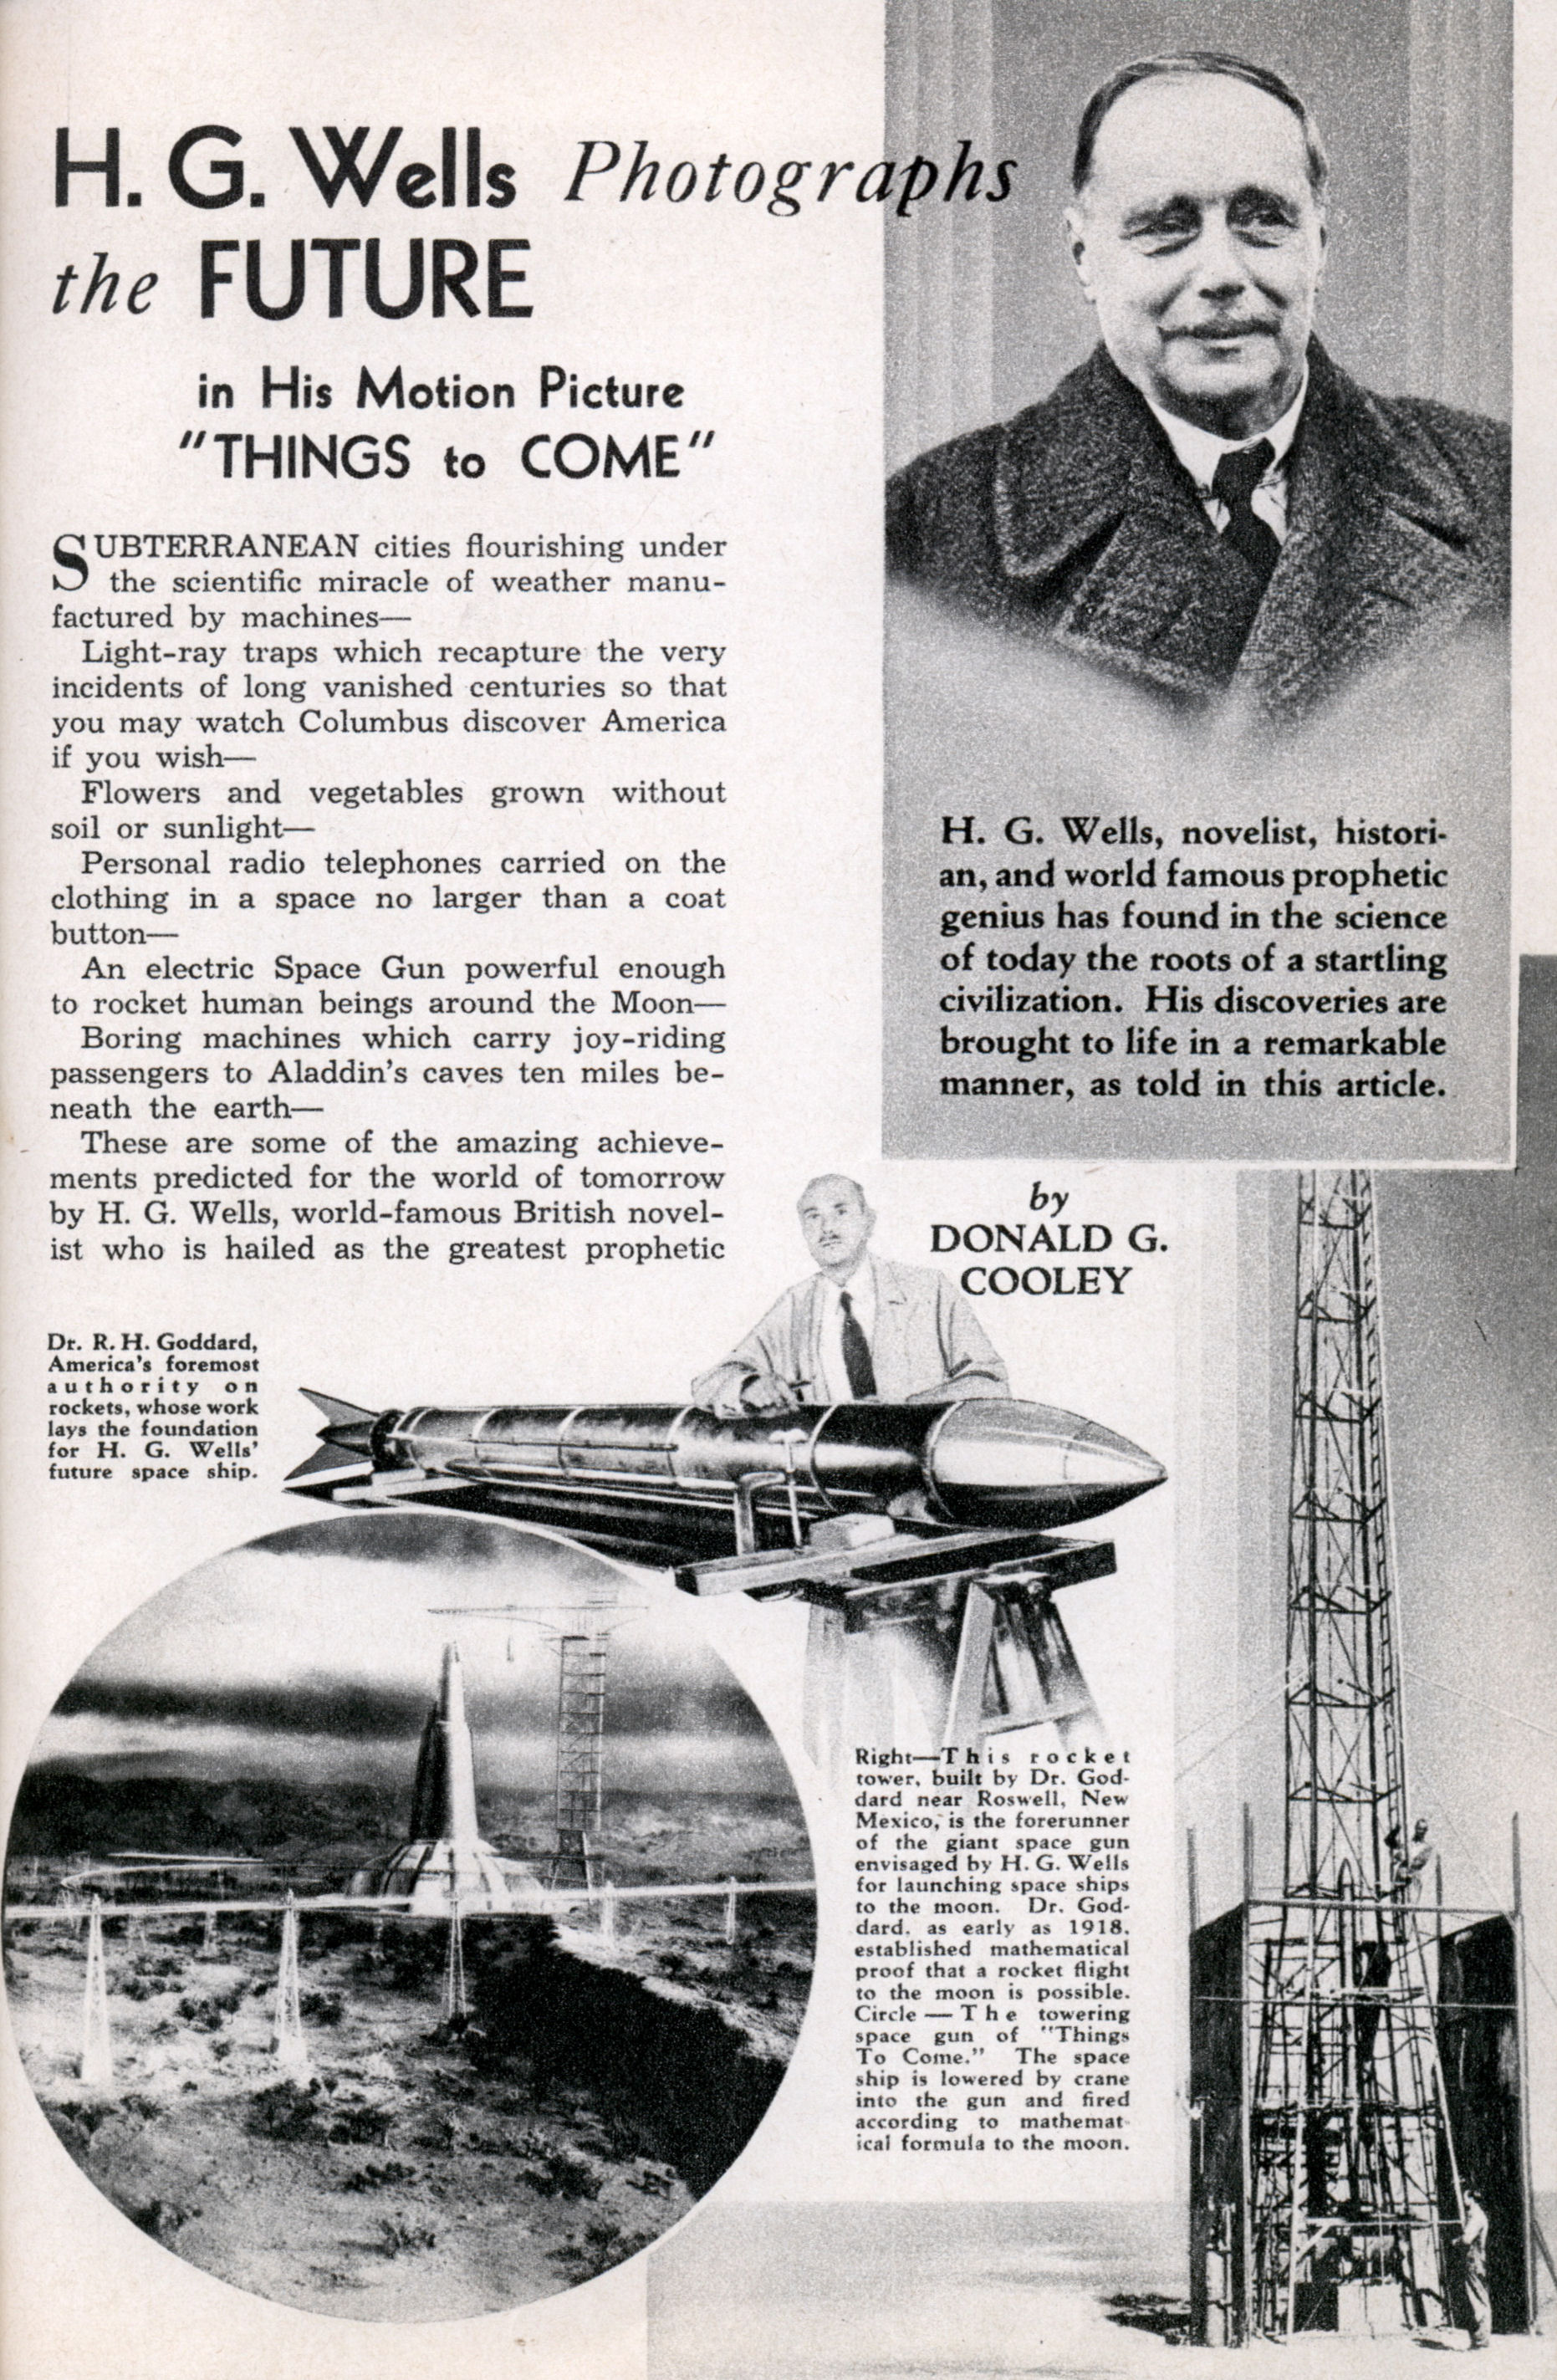 an overview of h g wells novel the shape of things to come Timeline 1930-1940:  the man who awoke 1933 h g wells: the shape of things to come 1934 edwin balmer & philip wylie:  from the h g wells novel,.